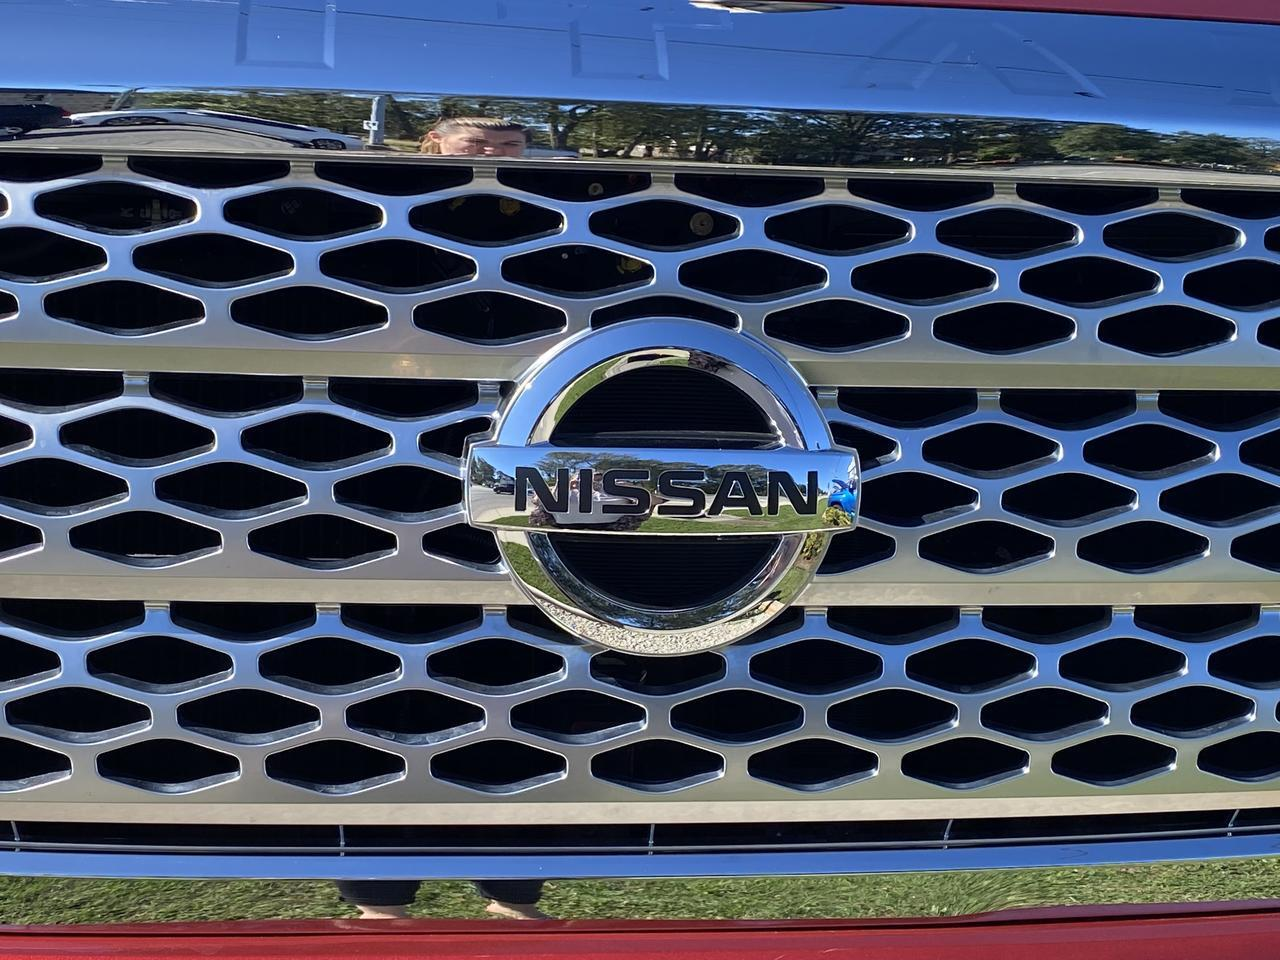 2018 NISSAN TITAN XD SL CREW CAB 4X4, WARRANTY, LEATHER, NAV, HEATED SEATS, BACKUP CAM, TOW PKG, 1 OWNER ONLY 7K MILES Norfolk VA